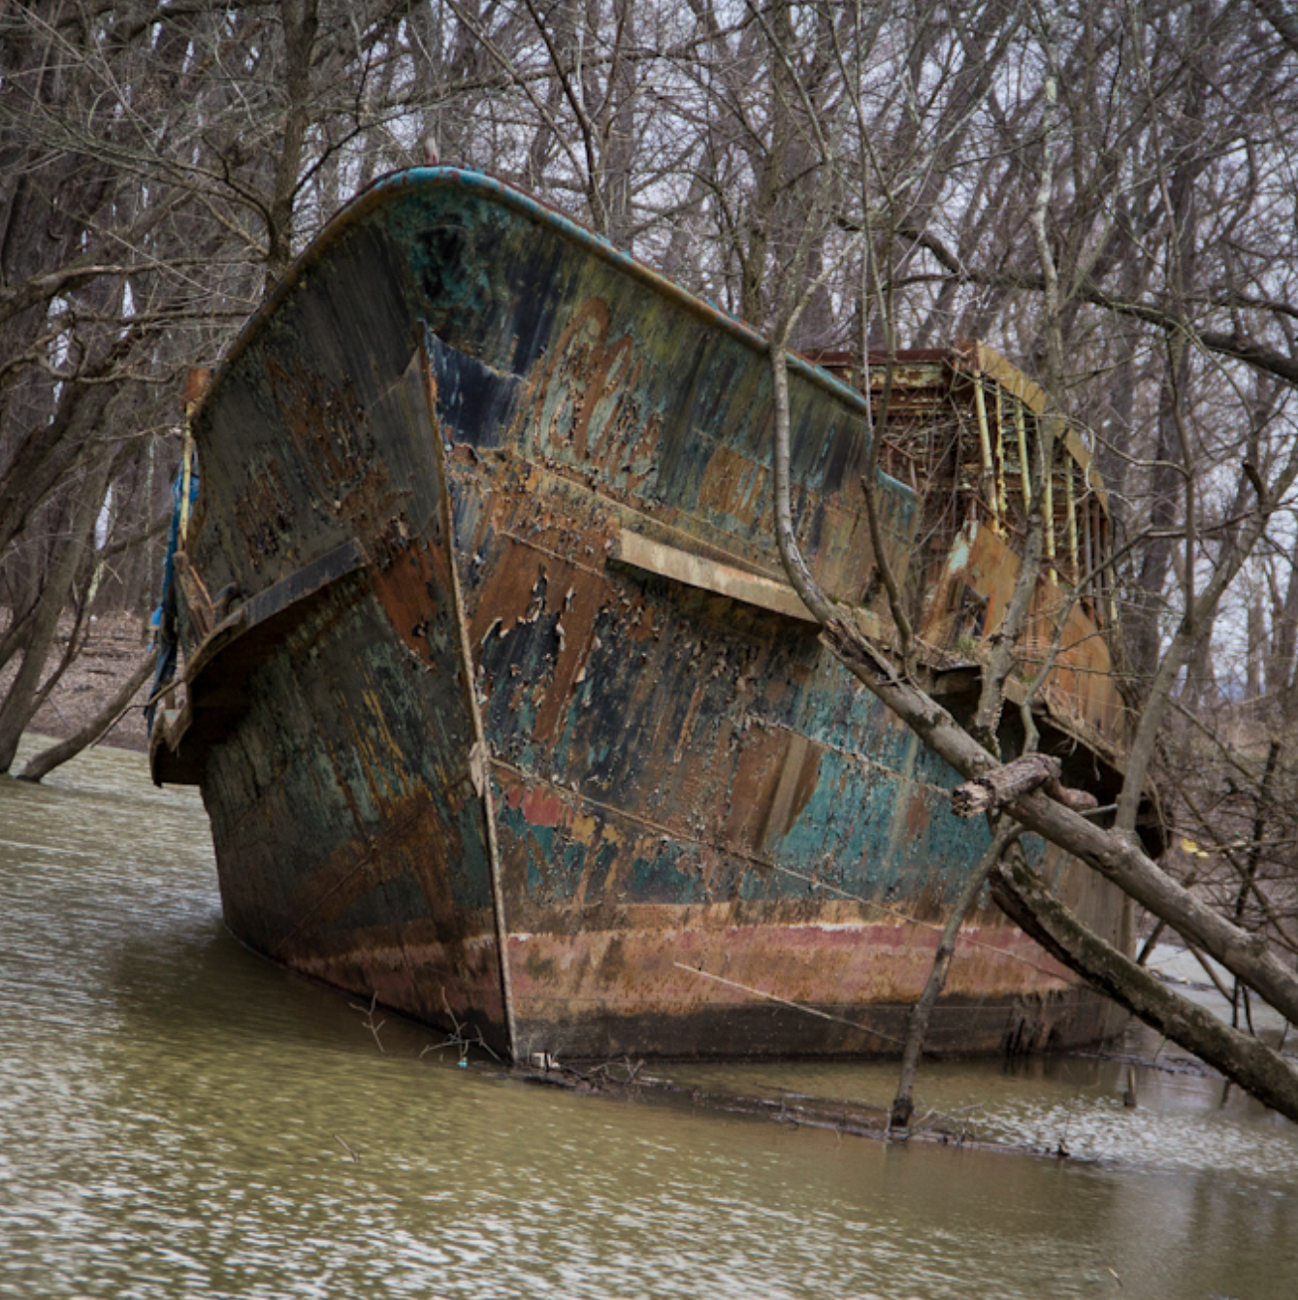 The Circle Line V was a ship that first launched in 1902, served numerous purposes, and subsequently came to rest on the banks of the Ohio River years later. For decades, the ship has been rusting beneath a canopy of trees, attracting visitors who want to see and photograph the hulking, metal boat. The ship sits on private property. / Image courtesy of Ronny Salerno and Queen City Discovery // Published: 8.4.18